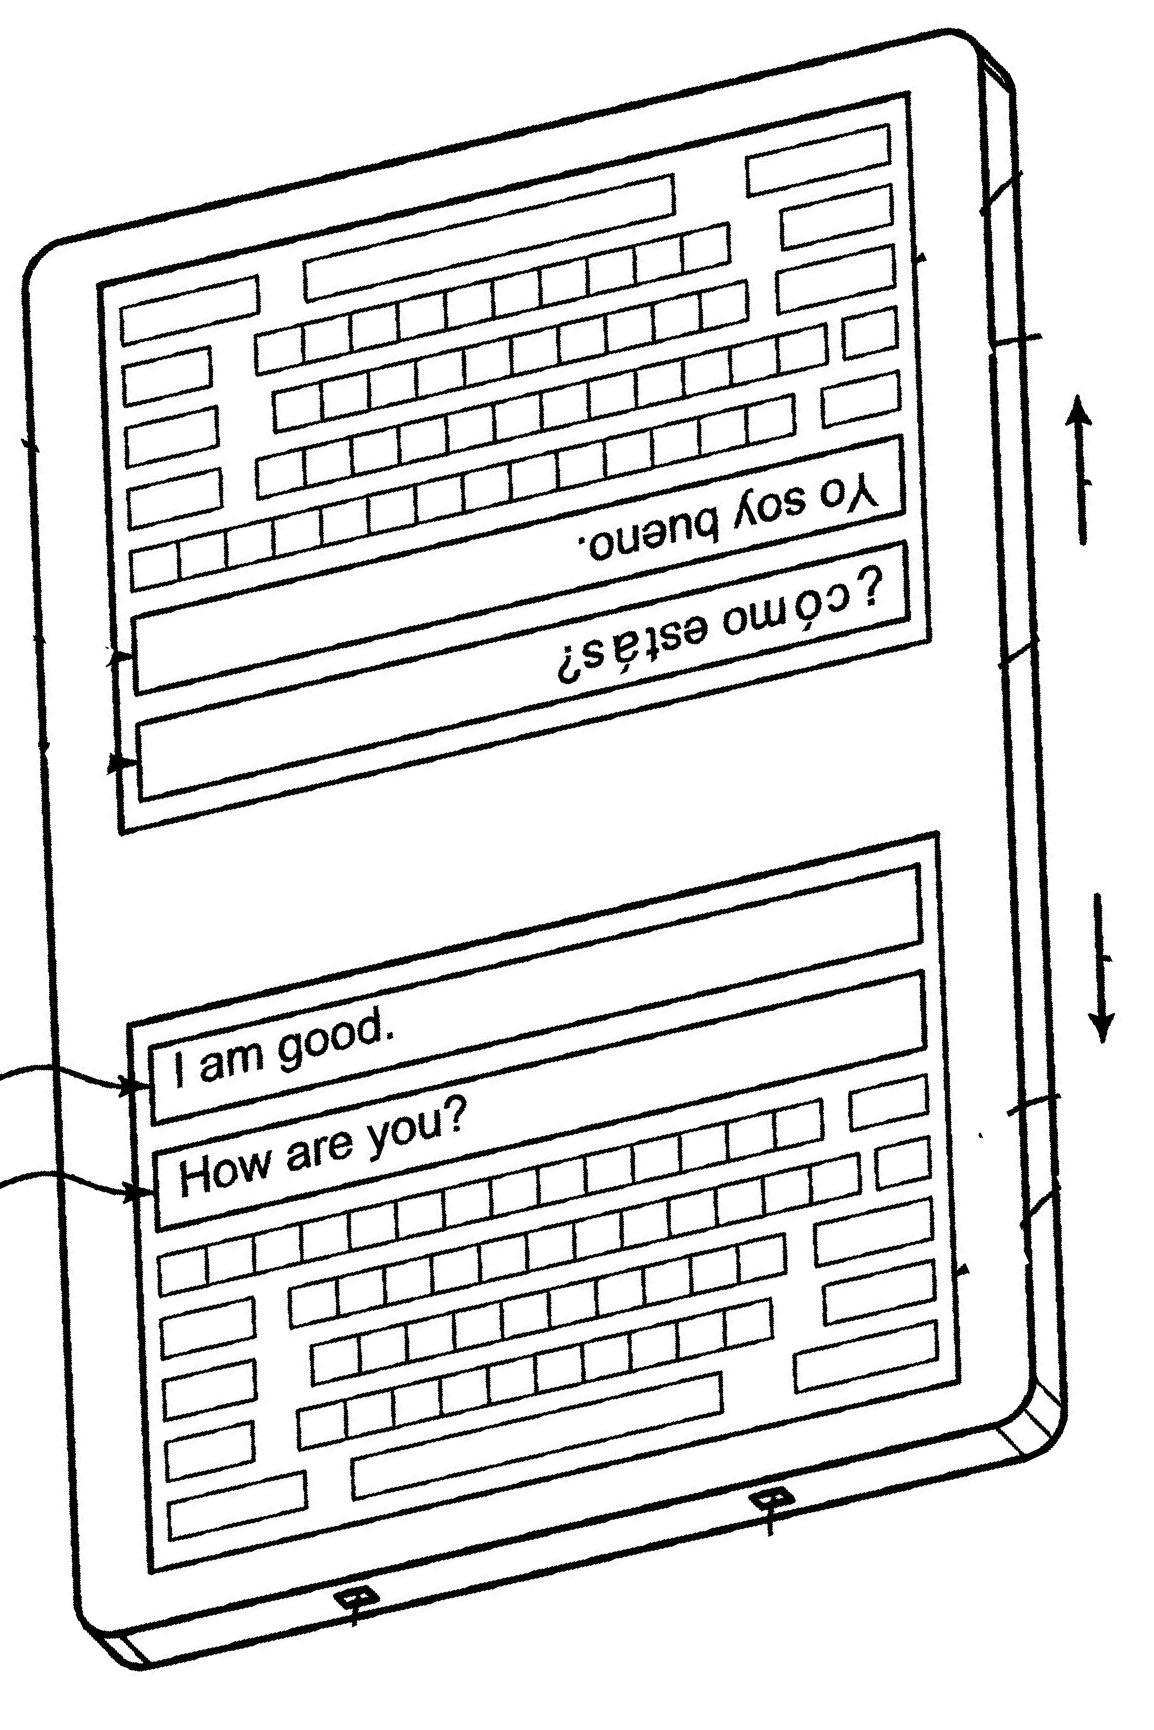 This Amazing Keyboard by Google Allows Two Users to Chat